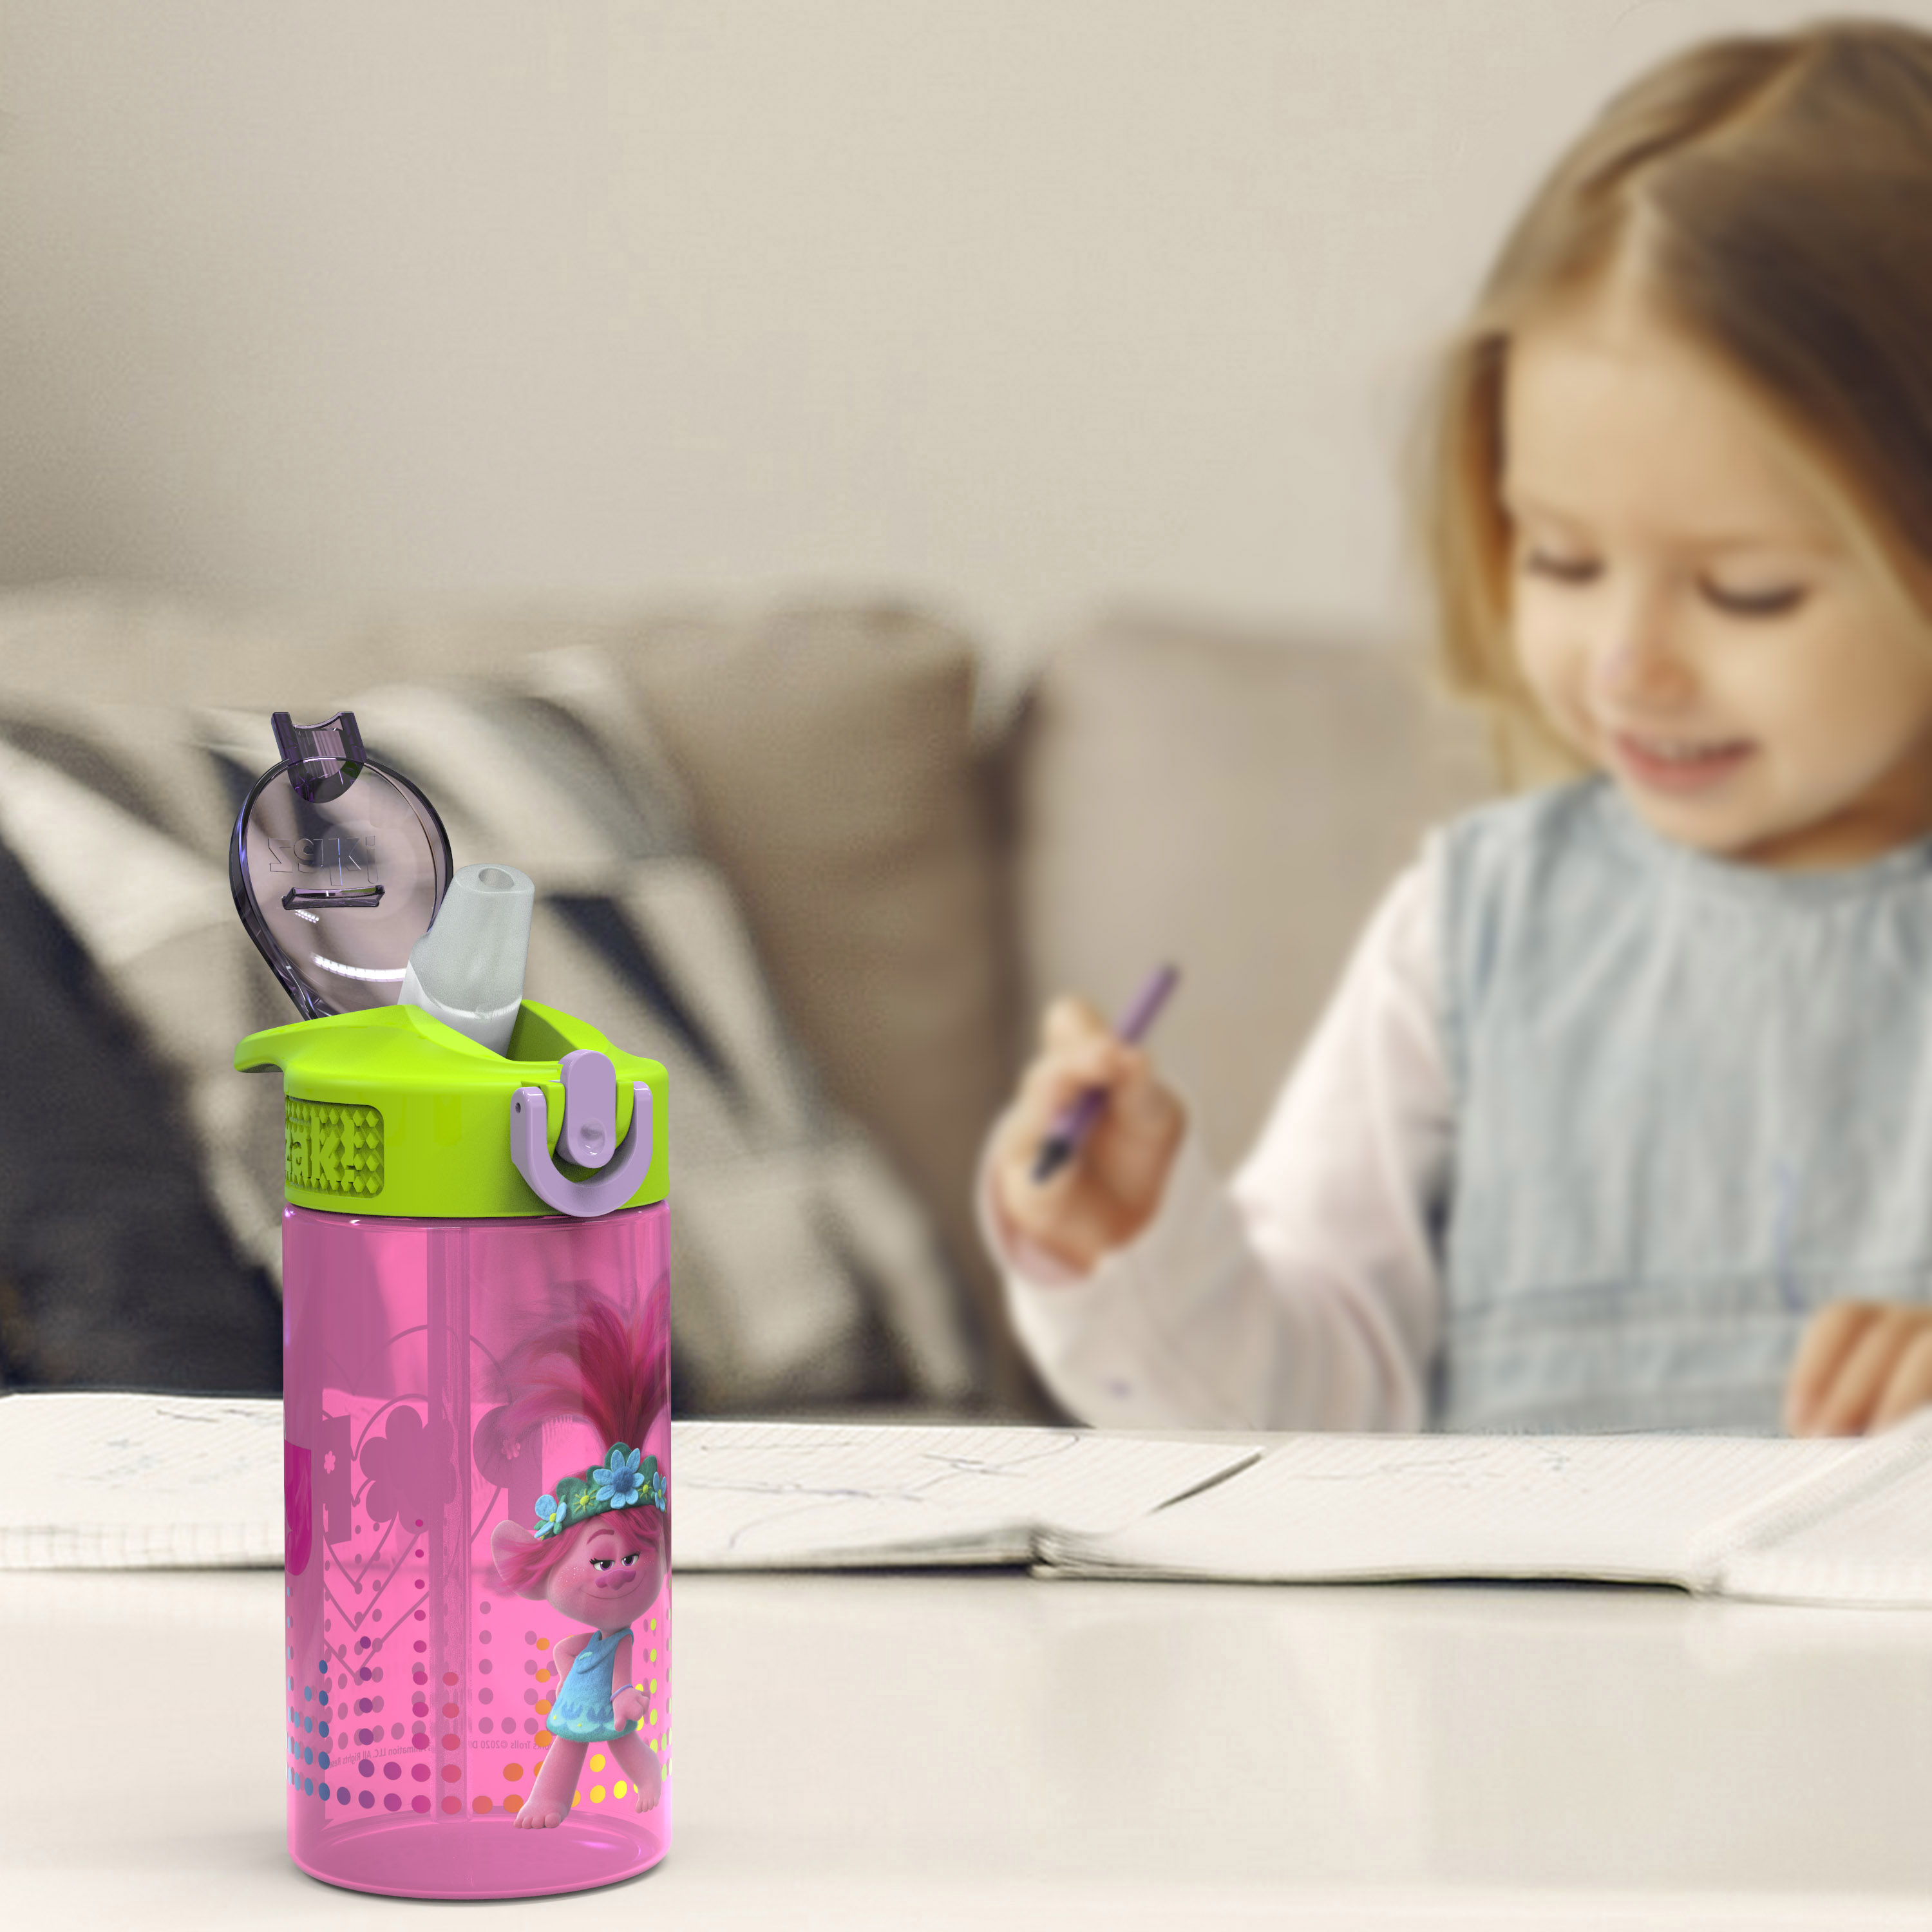 Trolls 2 Movie 16 ounce Reusable Plastic Water Bottle with Straw, Poppy, 2-piece set slideshow image 9